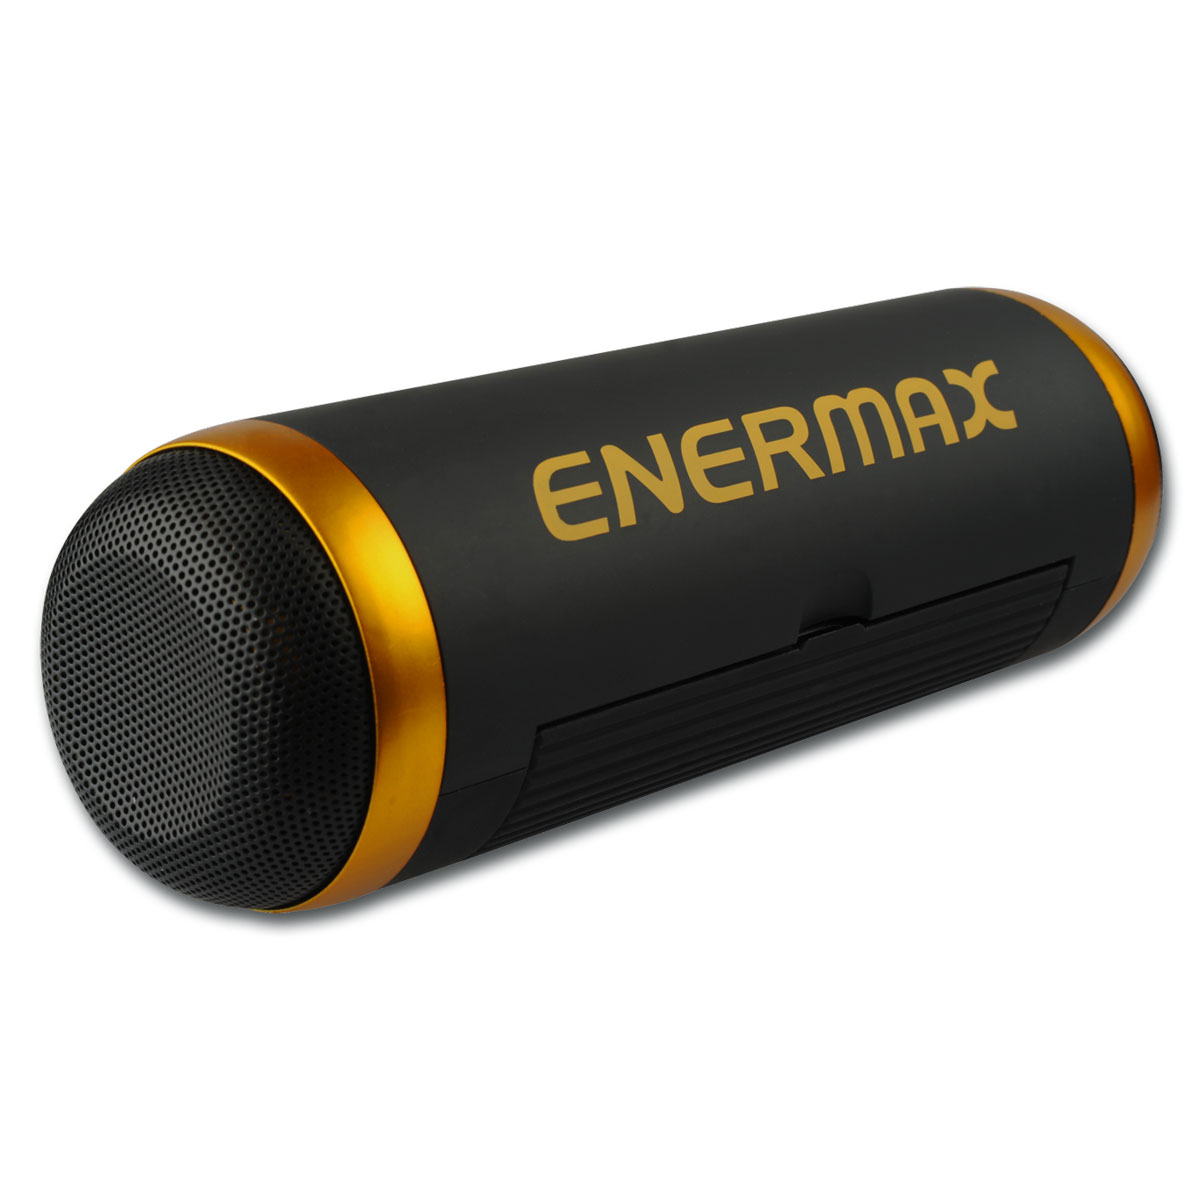 enermax eas01 noir dock enceinte bluetooth enermax sur. Black Bedroom Furniture Sets. Home Design Ideas